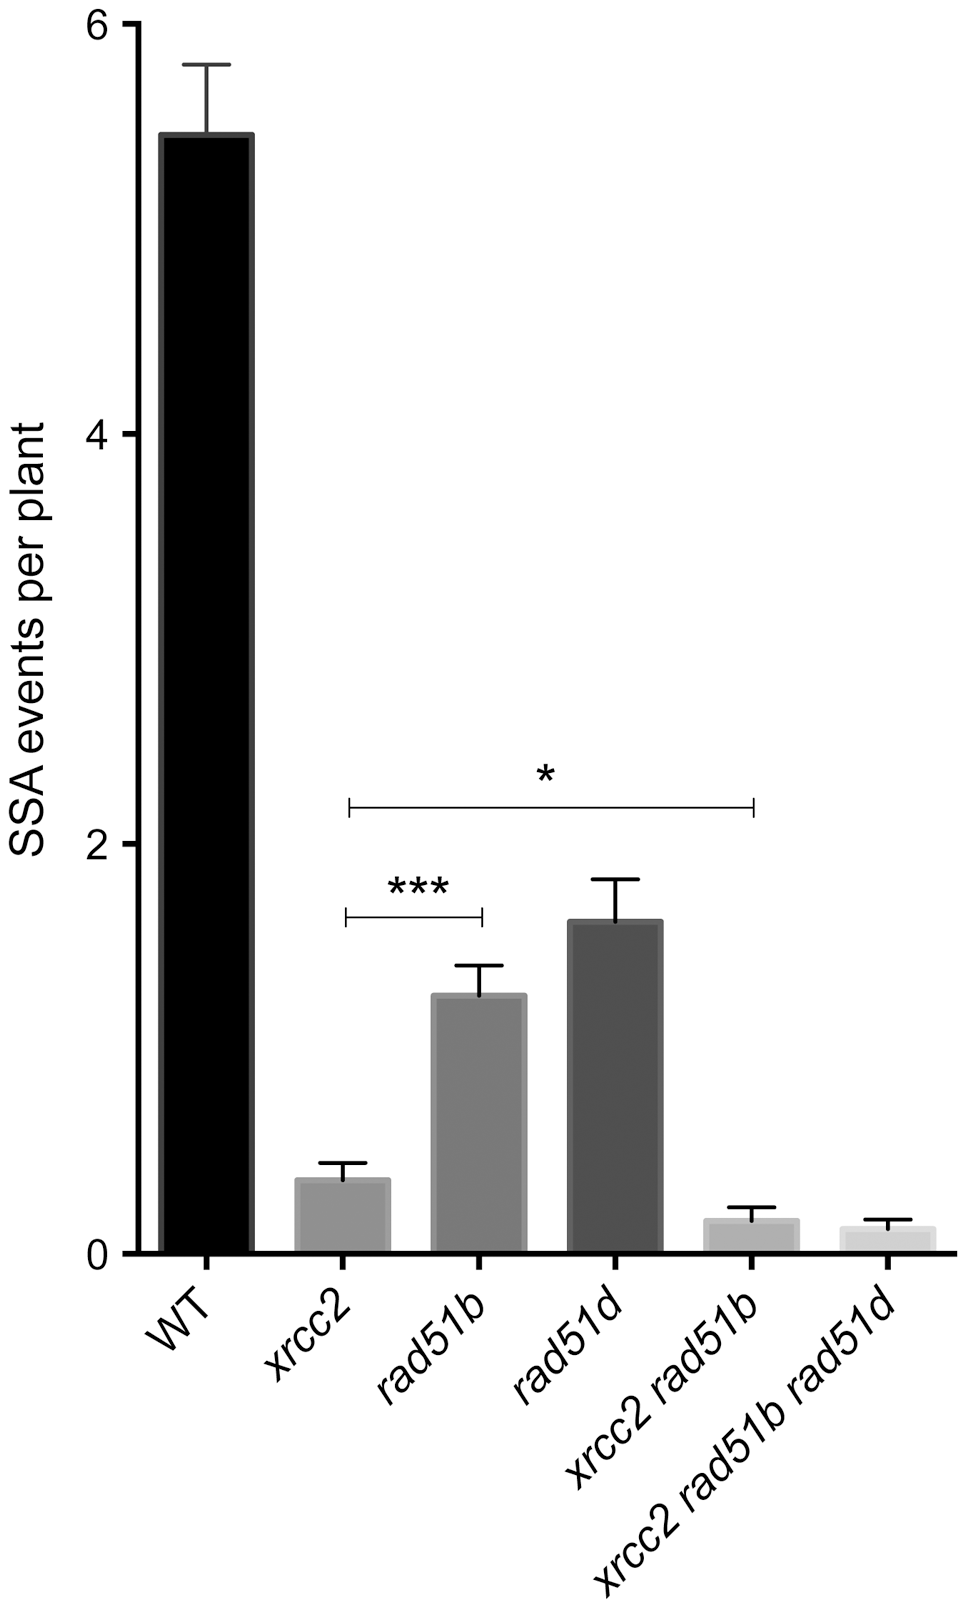 Individual and combined effects of <i>xrcc2, rad51b</i> and <i>rad51d</i> on spontaneous DGU.US recombination.